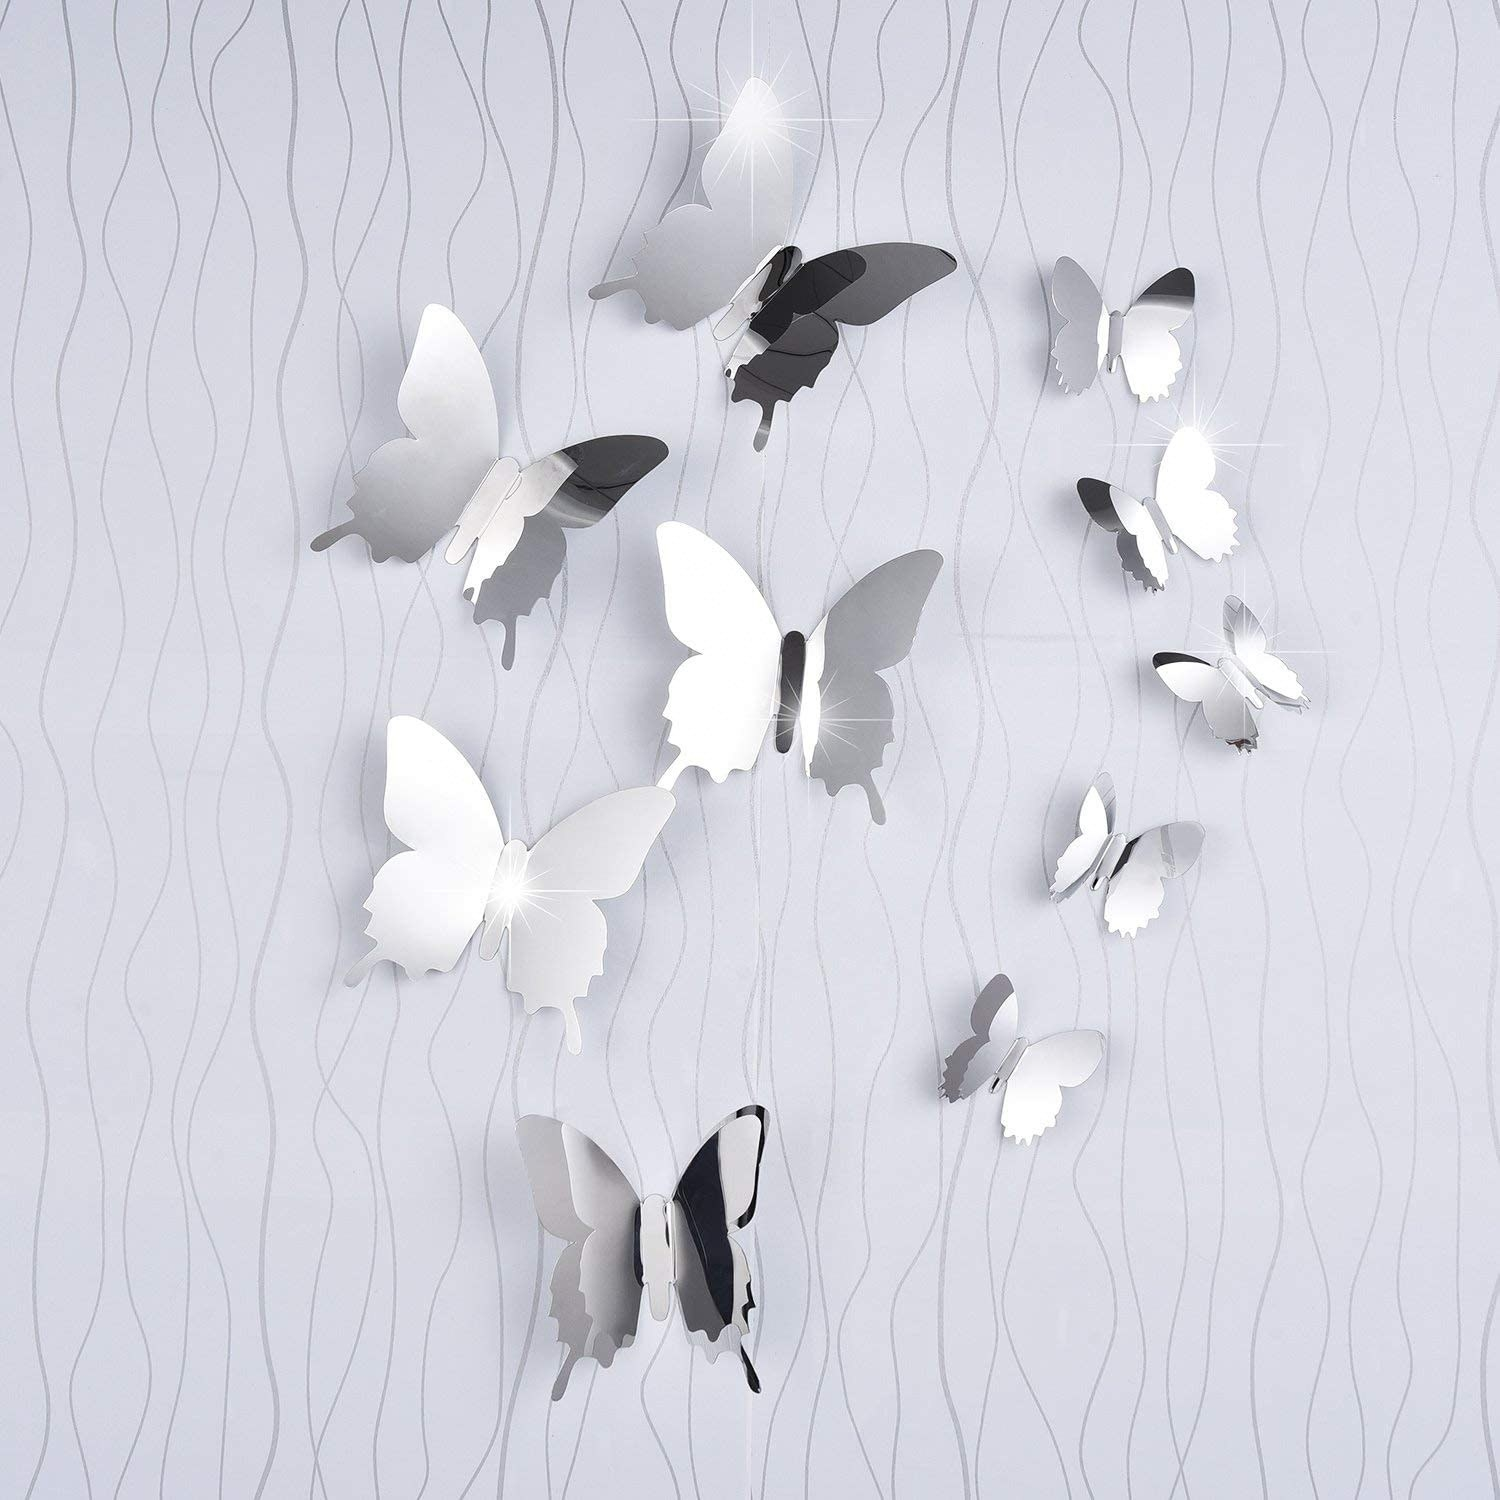 mirror 3D butterfly decorations on the wall